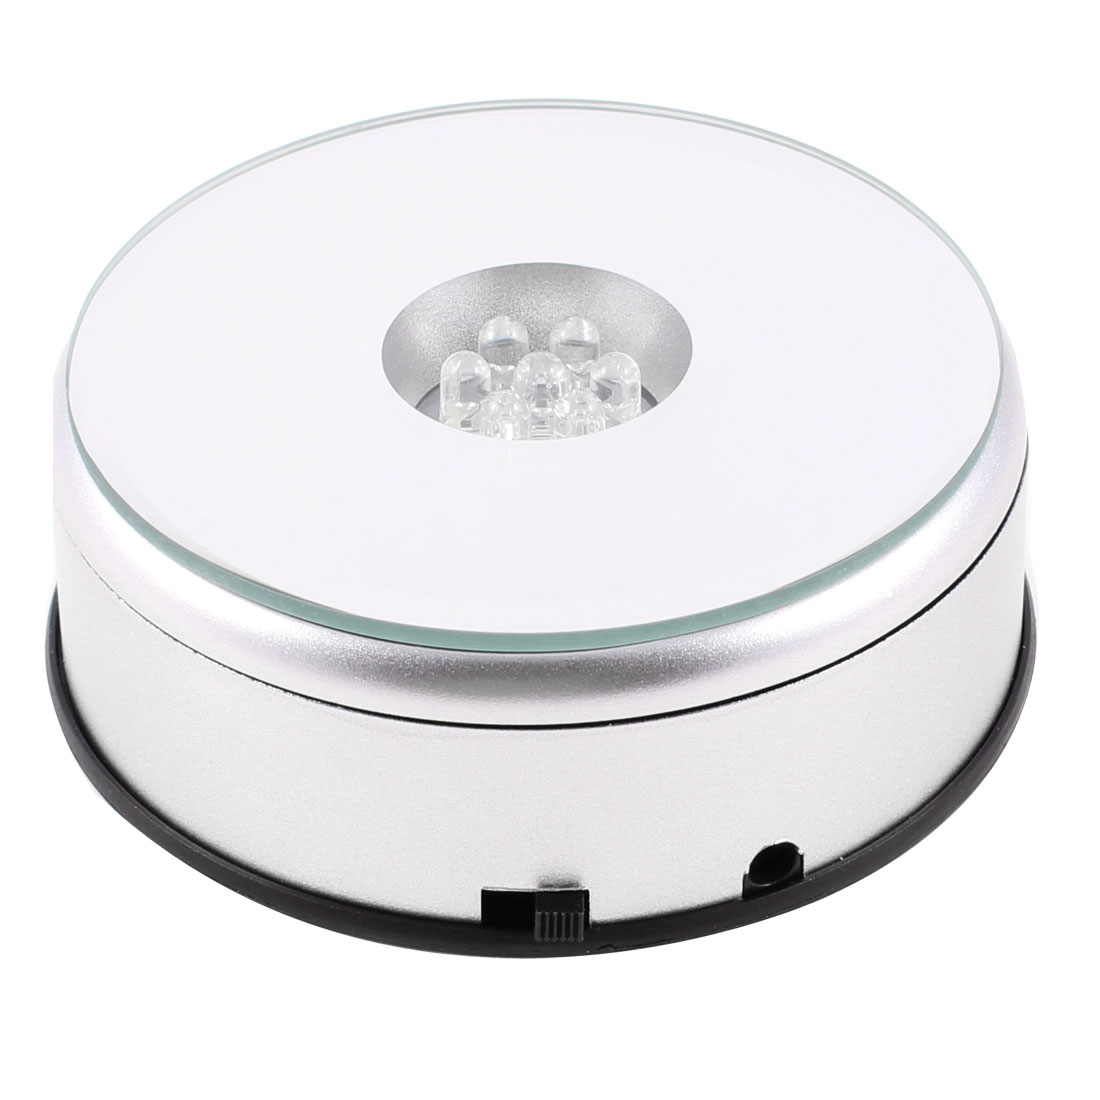 7 LED Light Stand Turntable Rotating Base for Display Crystals Glass